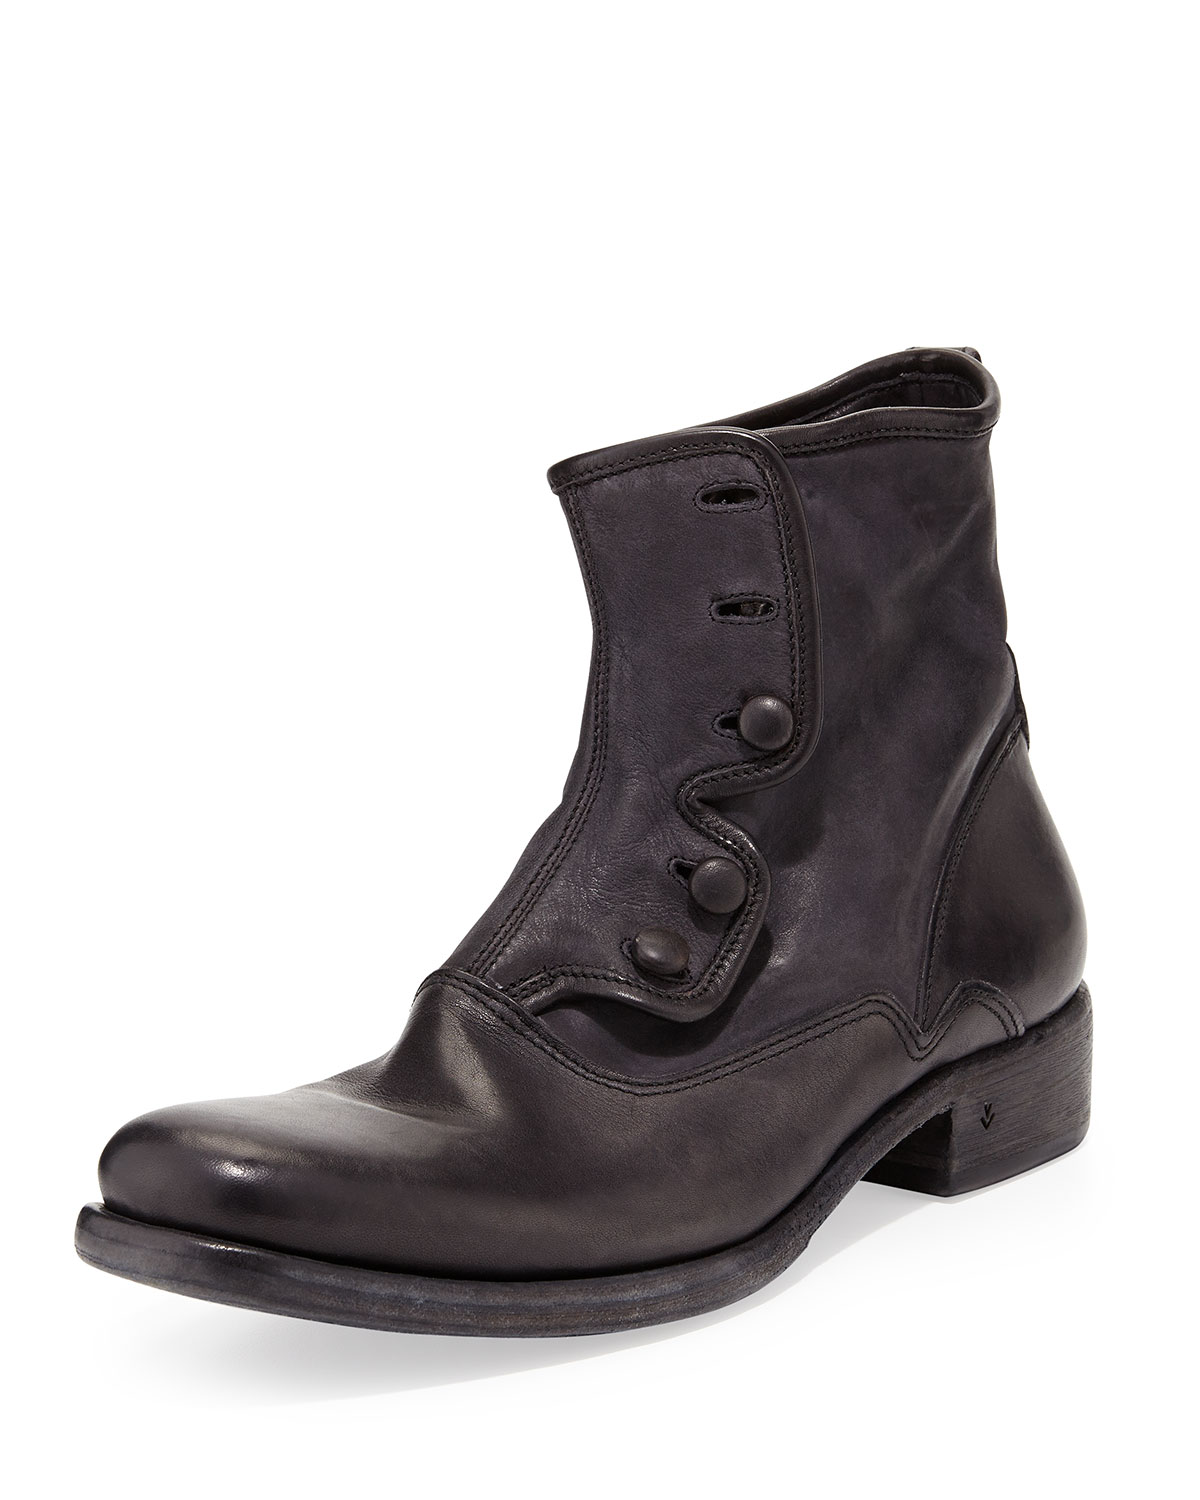 John Varvatos Bowery Button Boot, Black